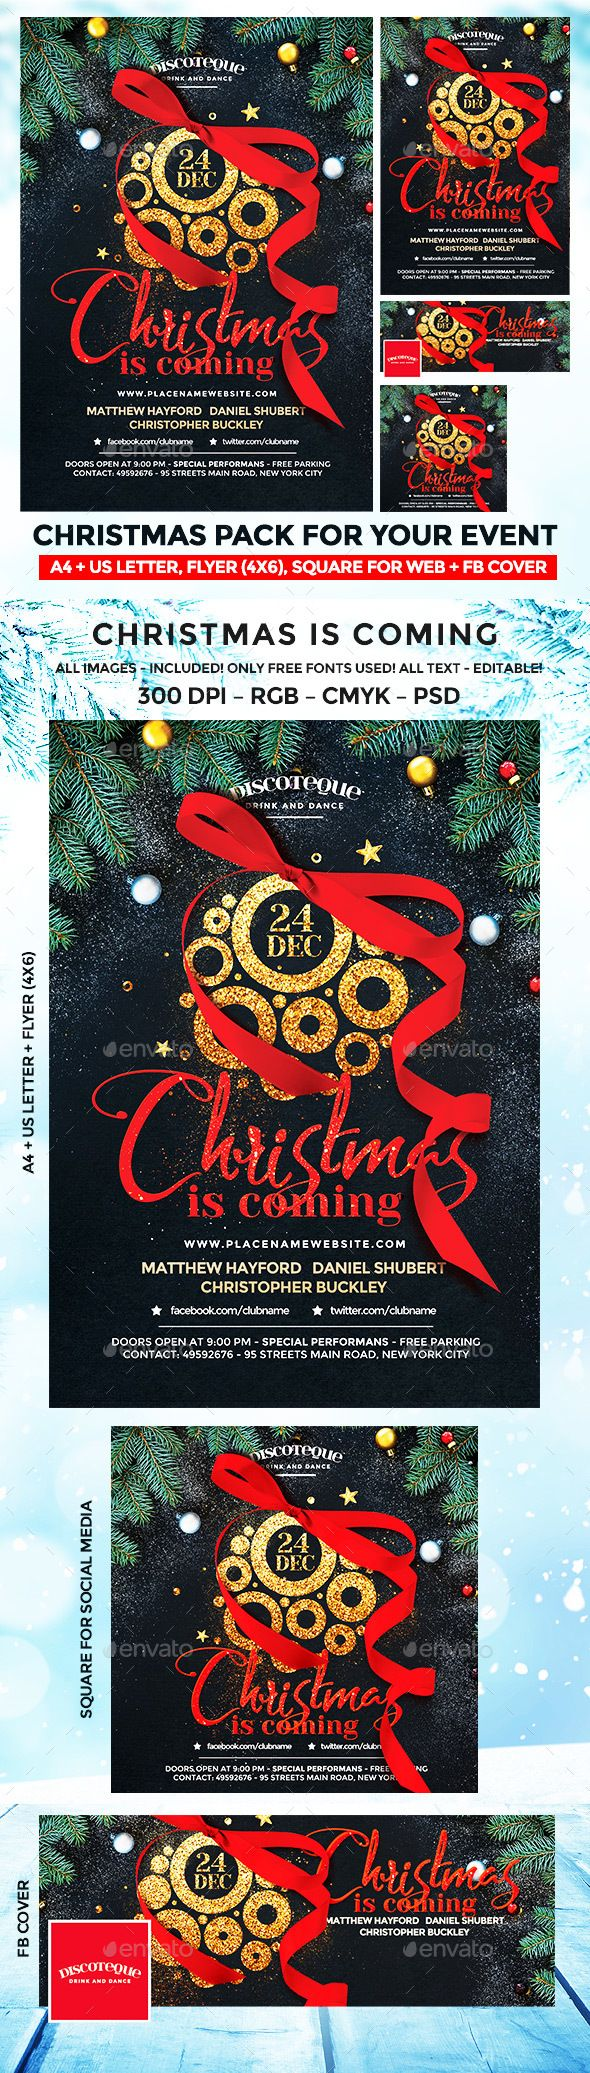 Best 25 event flyers ideas on pinterest flyer and poster design christmas flyer pronofoot35fo Image collections